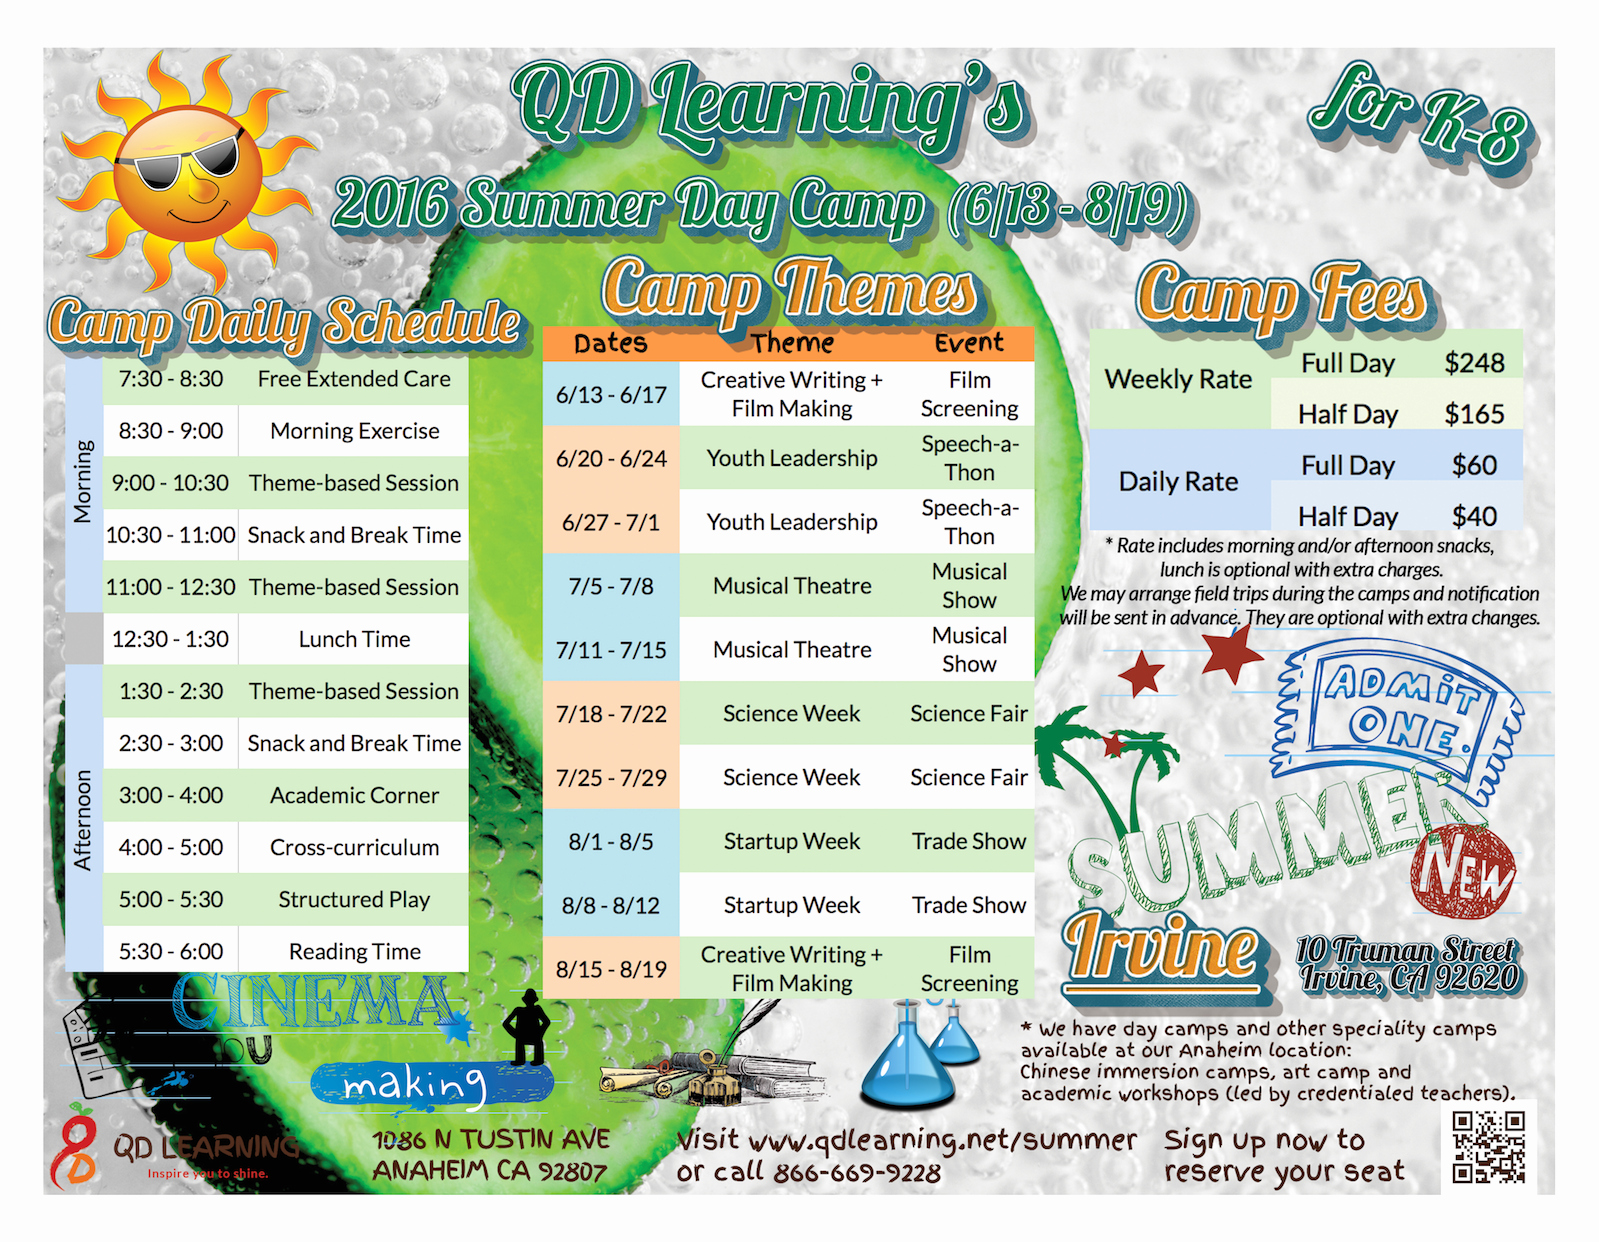 Summer Camp Schedules Template Lovely 2016 Summer Camp for K 8 In Irvine Qd Learning